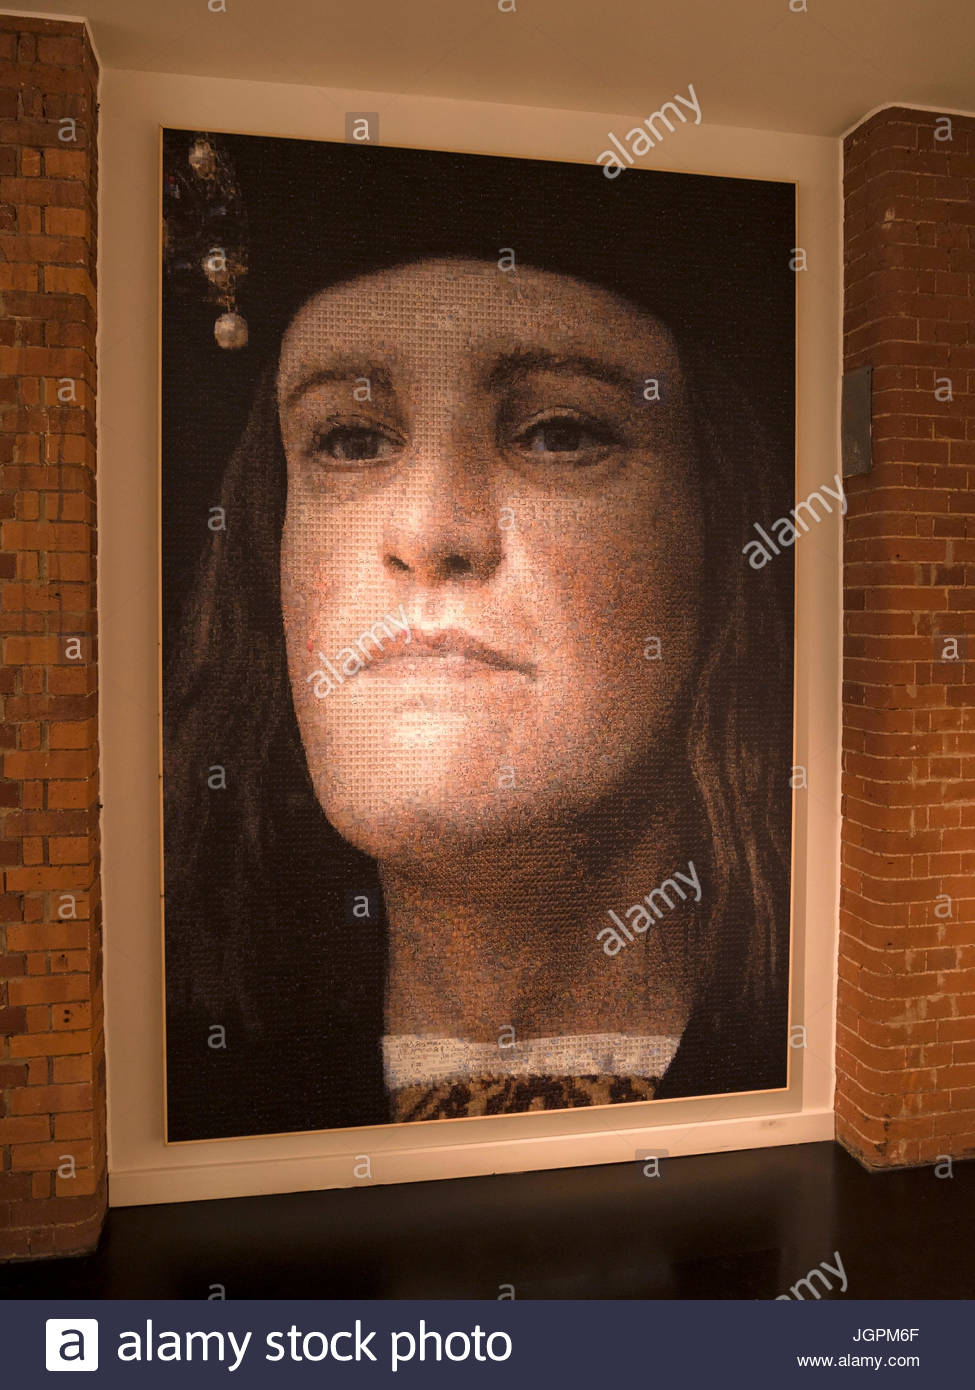 Large digital photo-mosaic portrait of King Richards face, King Richard III Visitor Centre Exhibition, Leicester, - Stock Image